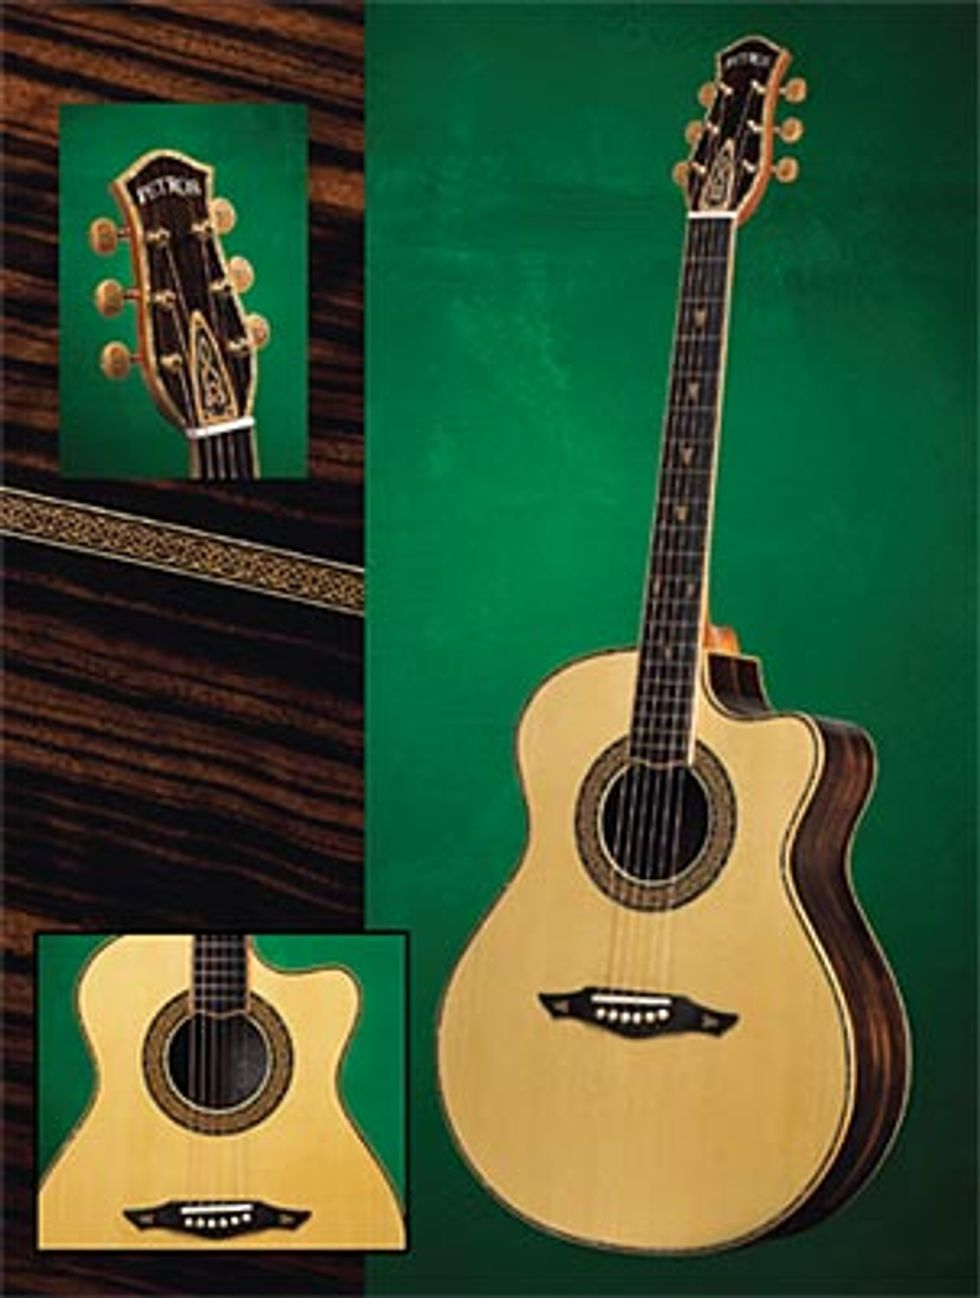 Petros Guitars: The Celt